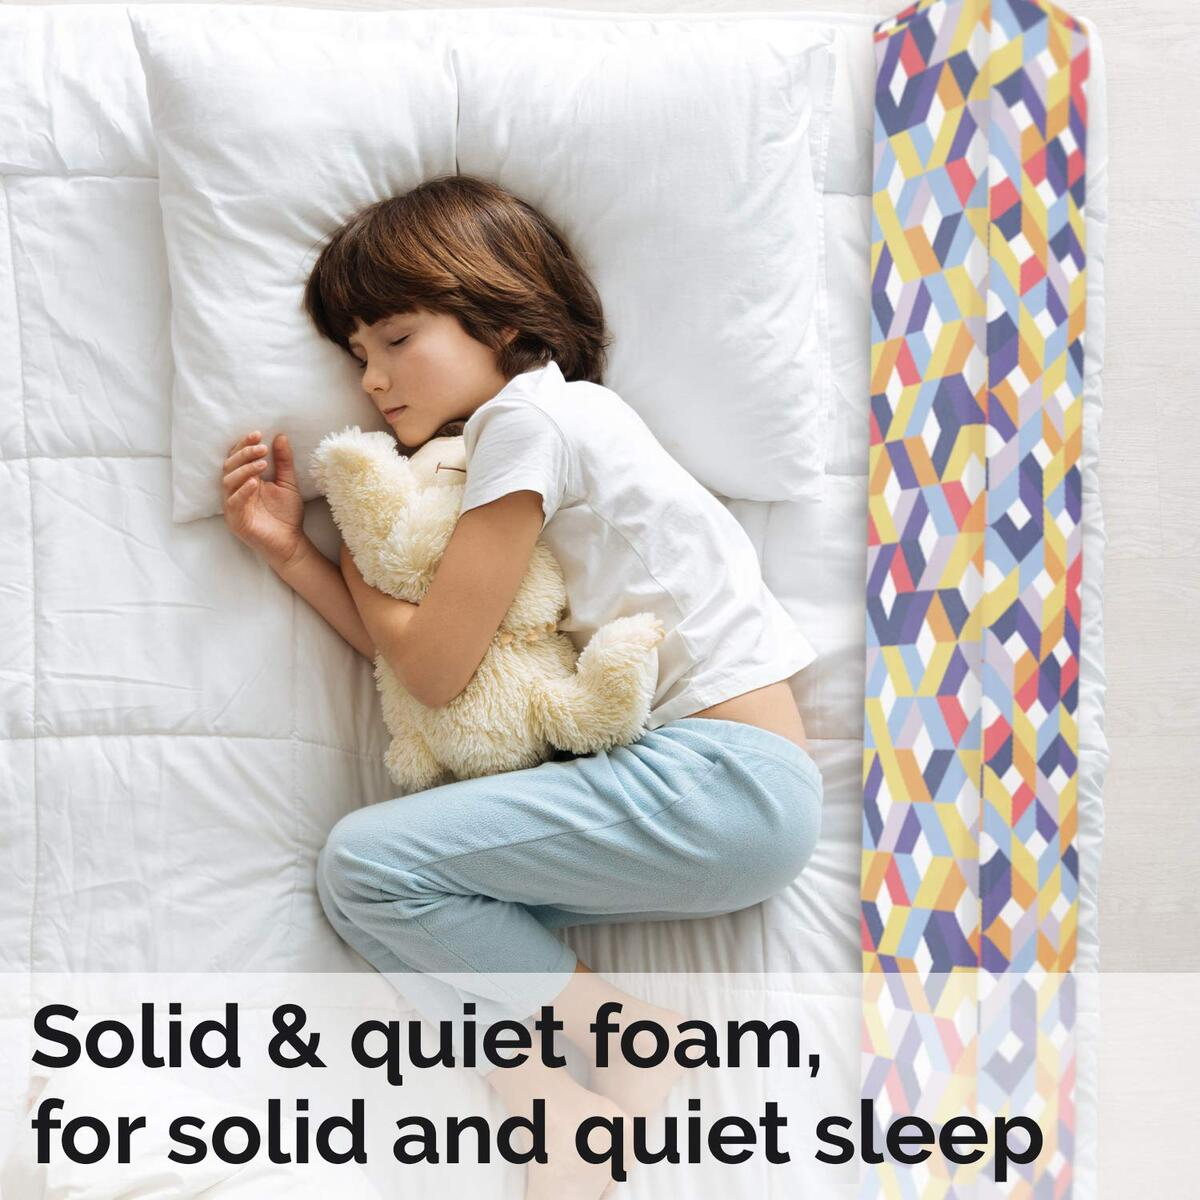 Bed Rail for Toddlers - Toddler Bed Rail Keep Them Safe at Night from Falling Out of Bed-1 Pack